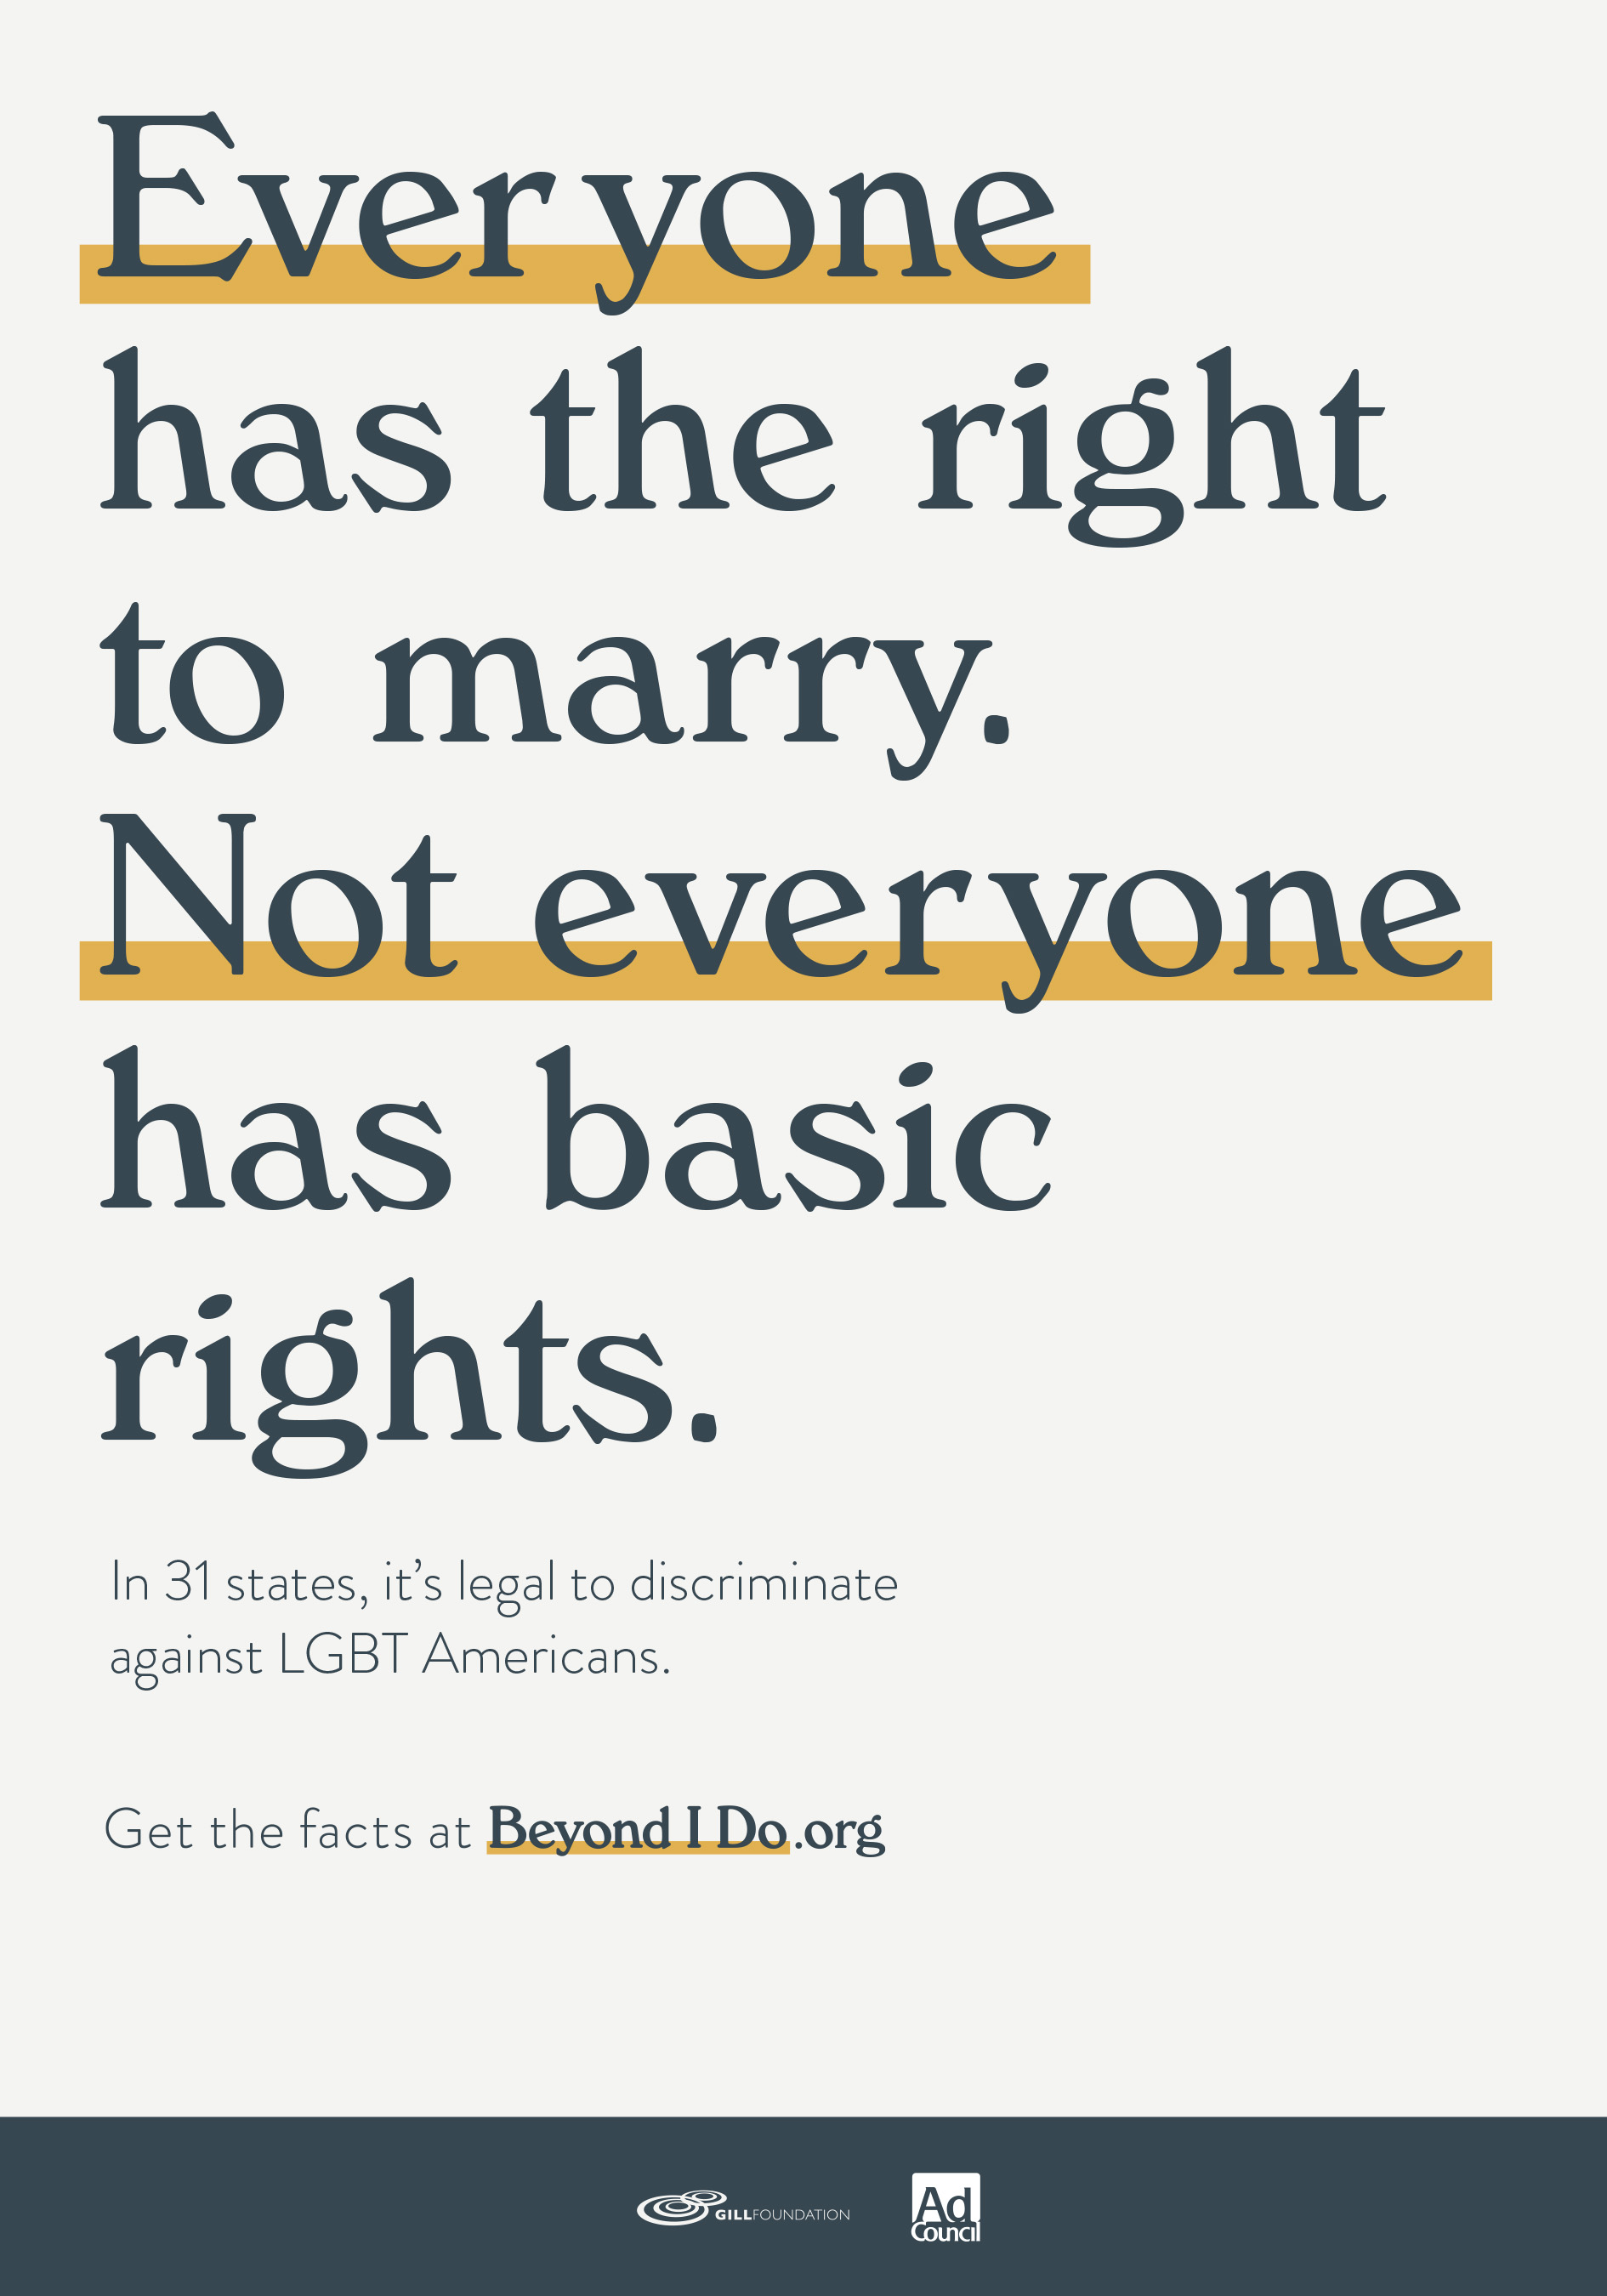 The goal of the Beyond I Do campaign is to raise awareness of the discrimination millions of LGBT Americans face every day and to promote equality for all Americans.